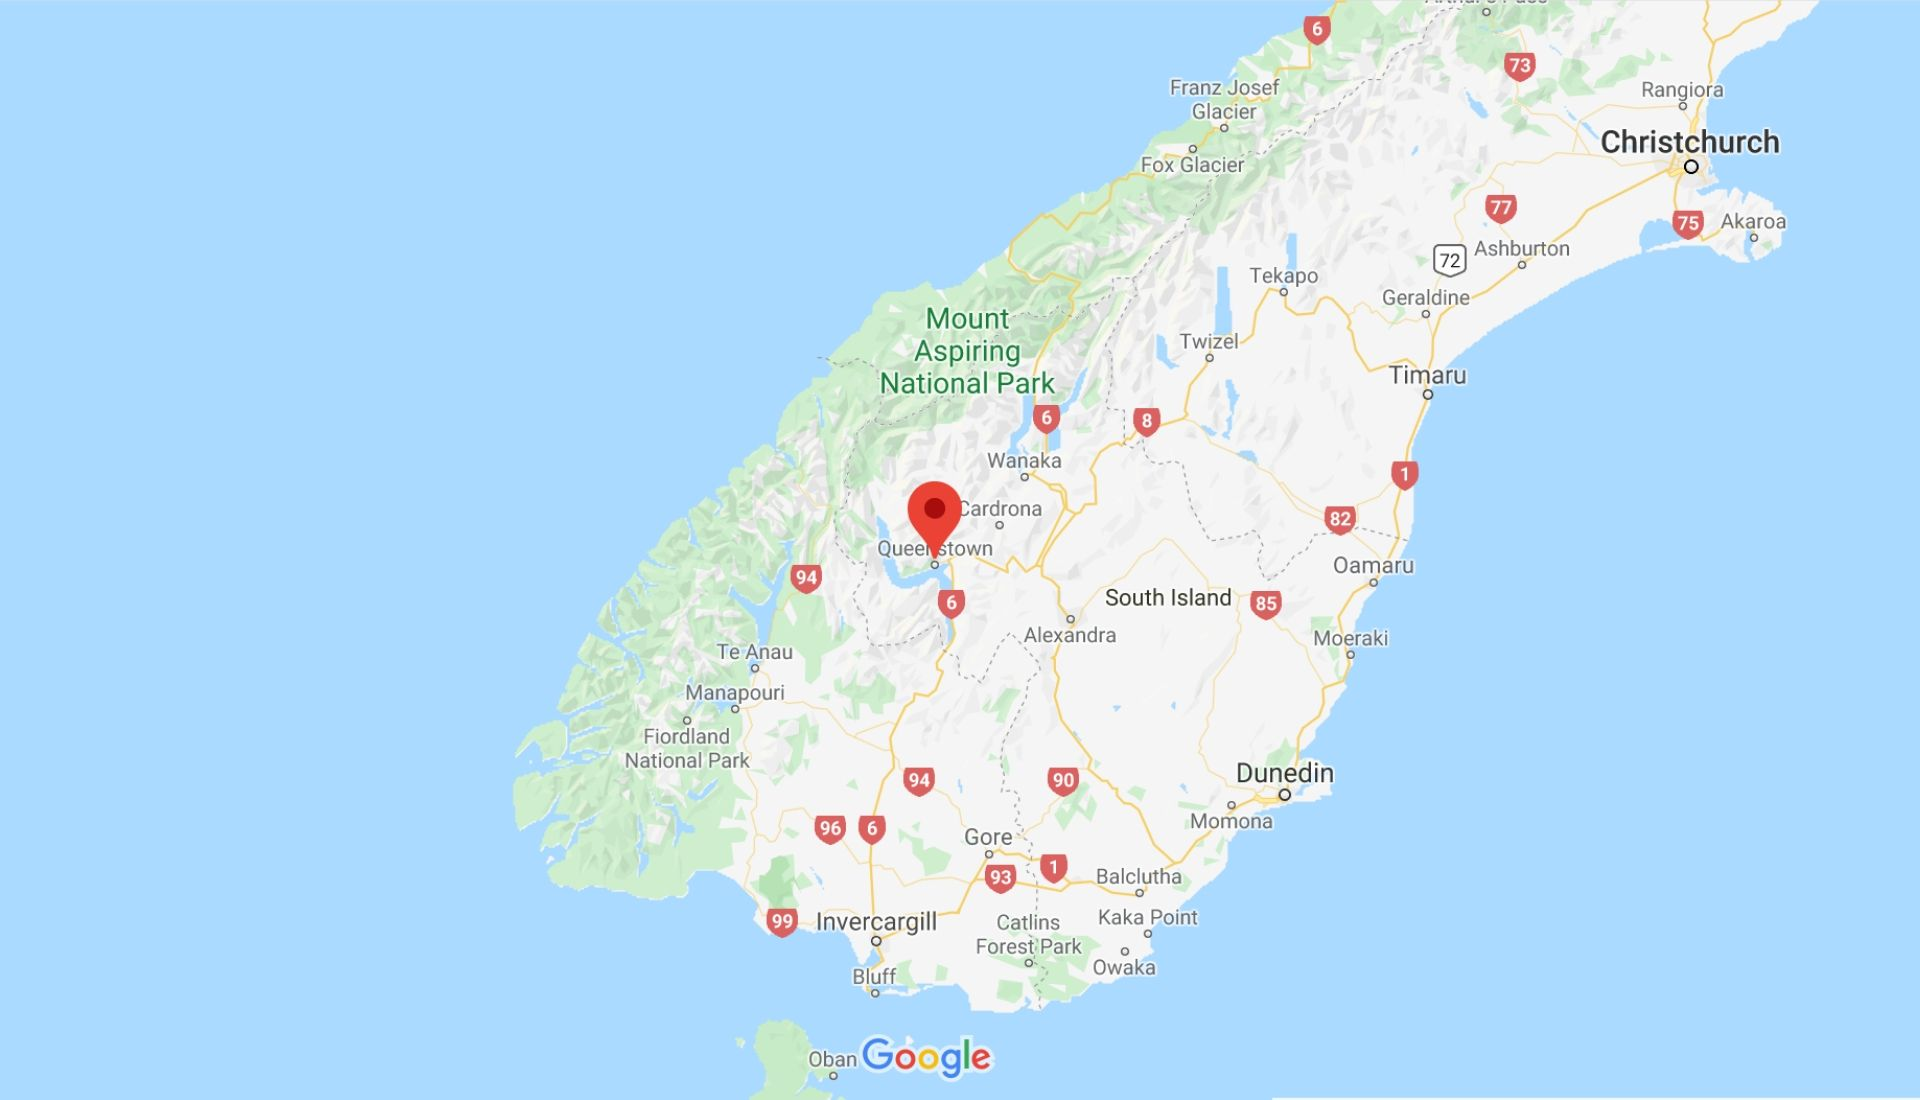 Location of Queenstown on the South Island